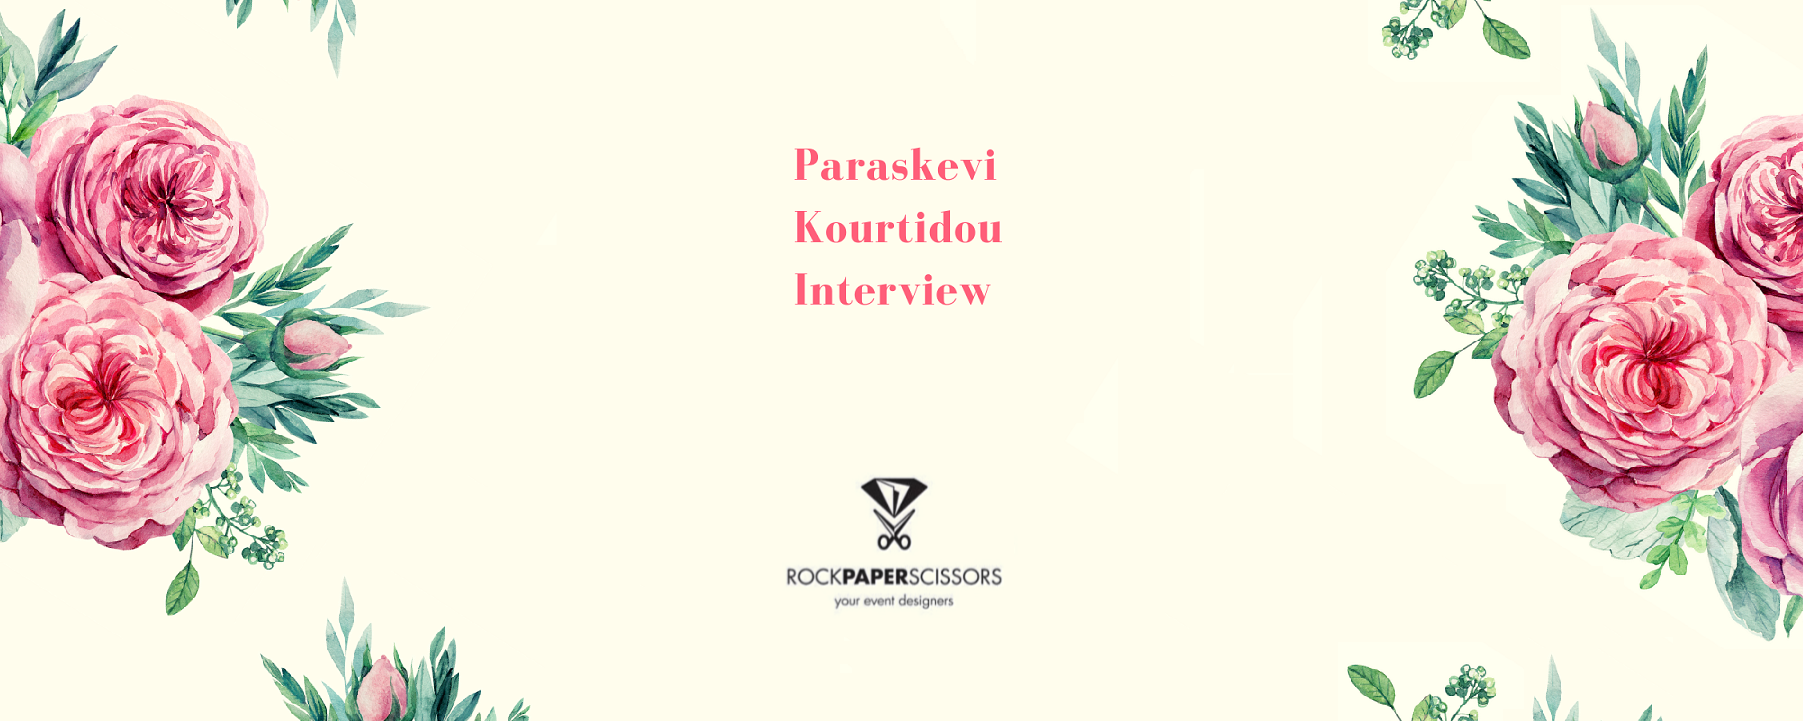 Paraskevi Kourtidou Interview